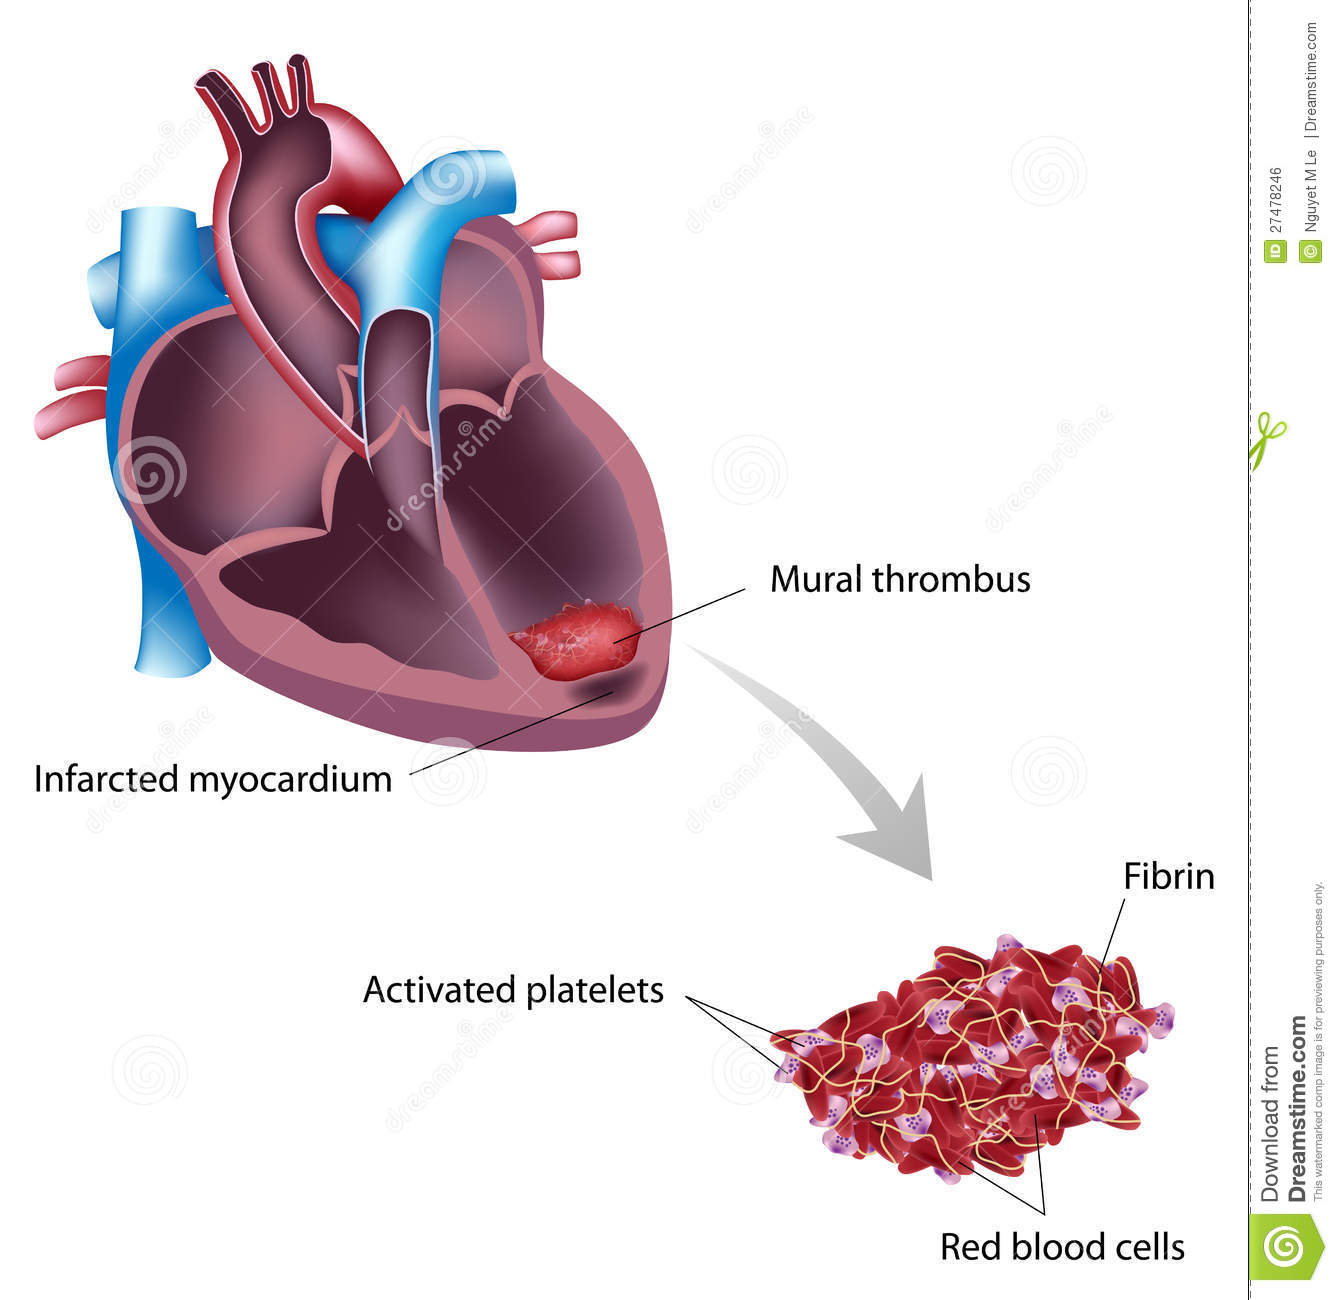 Mural thrombus royalty free stock image image 27478246 for Aortic mural thrombus